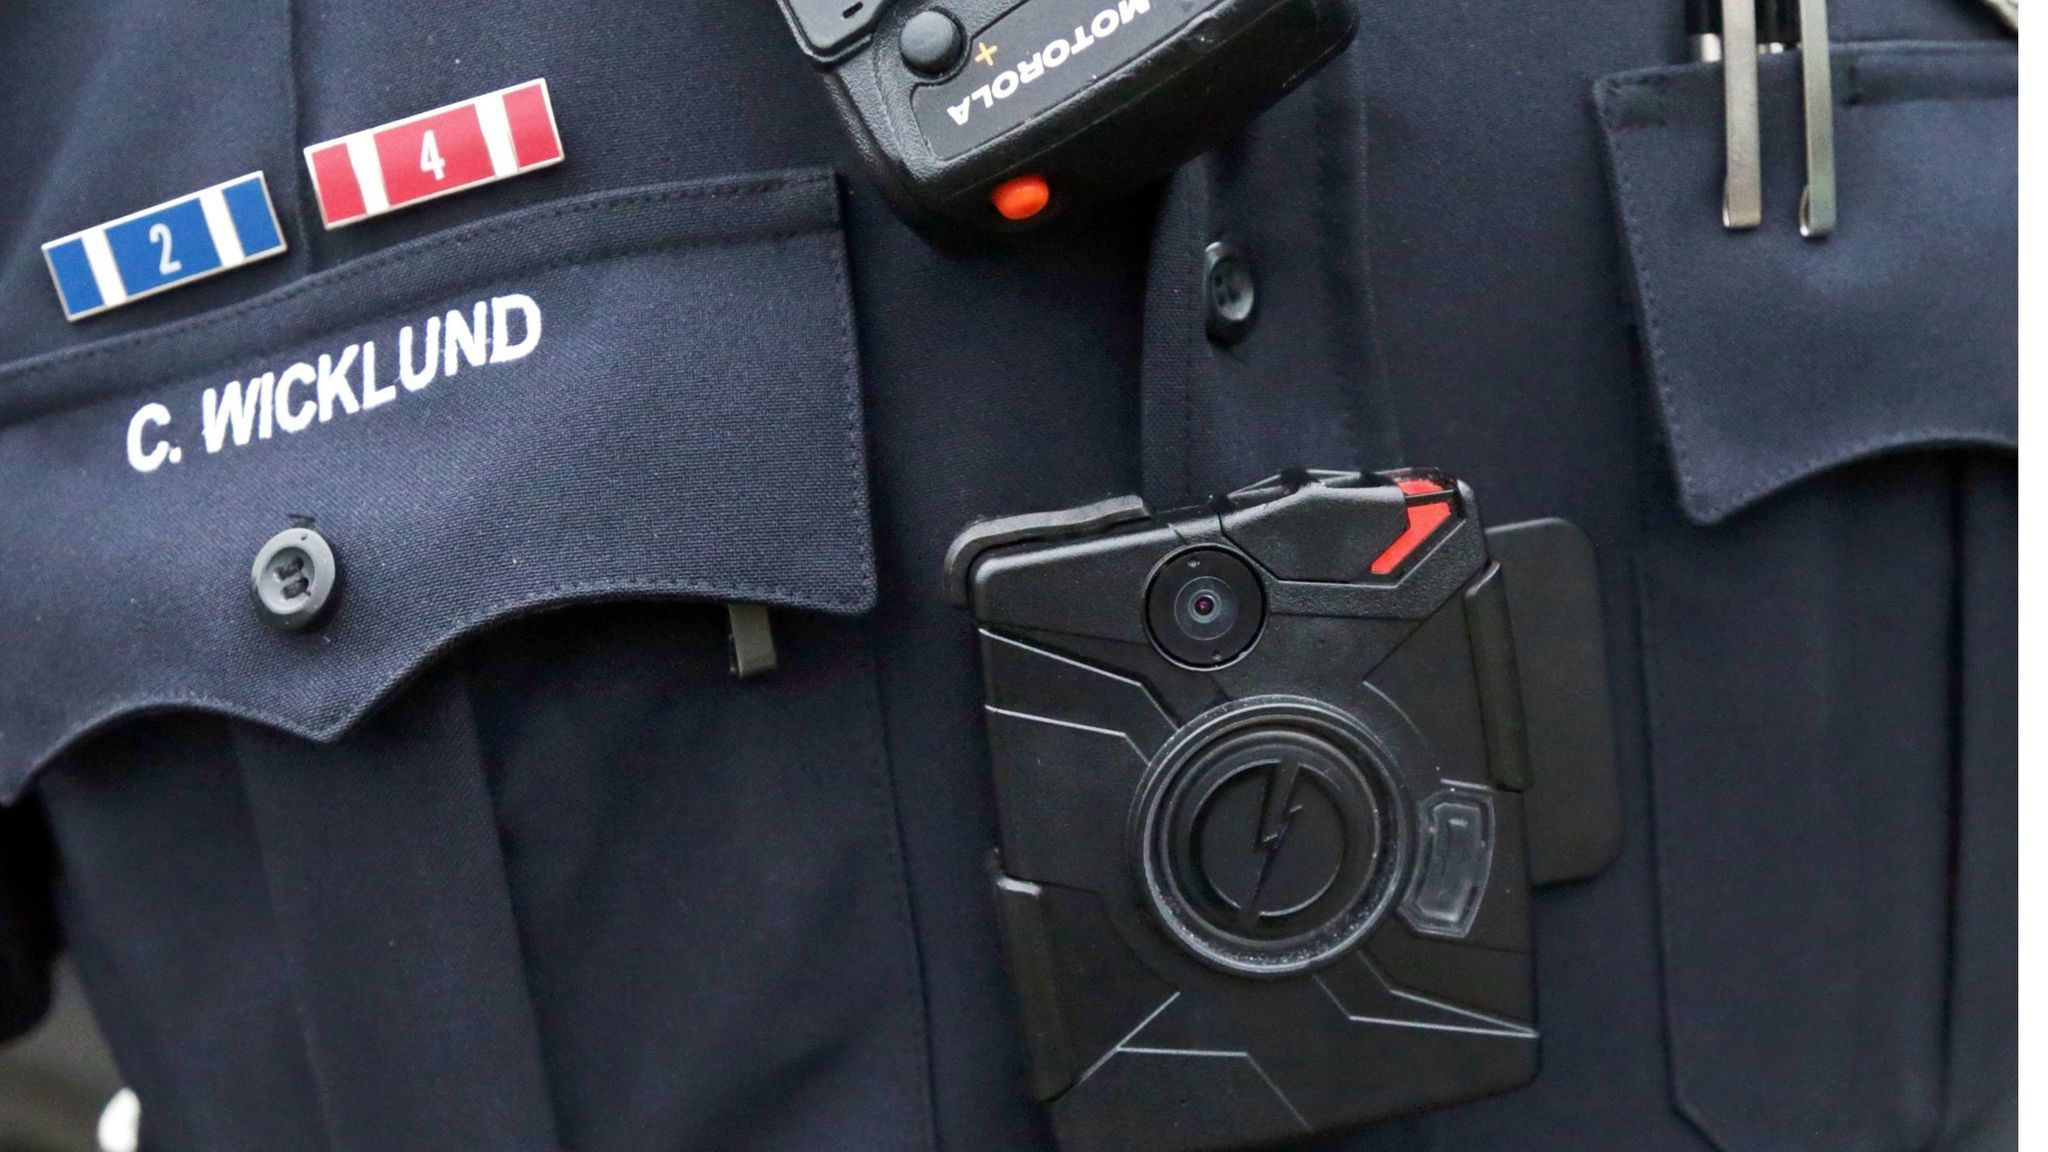 Former sheriff: Body cameras protect law officers